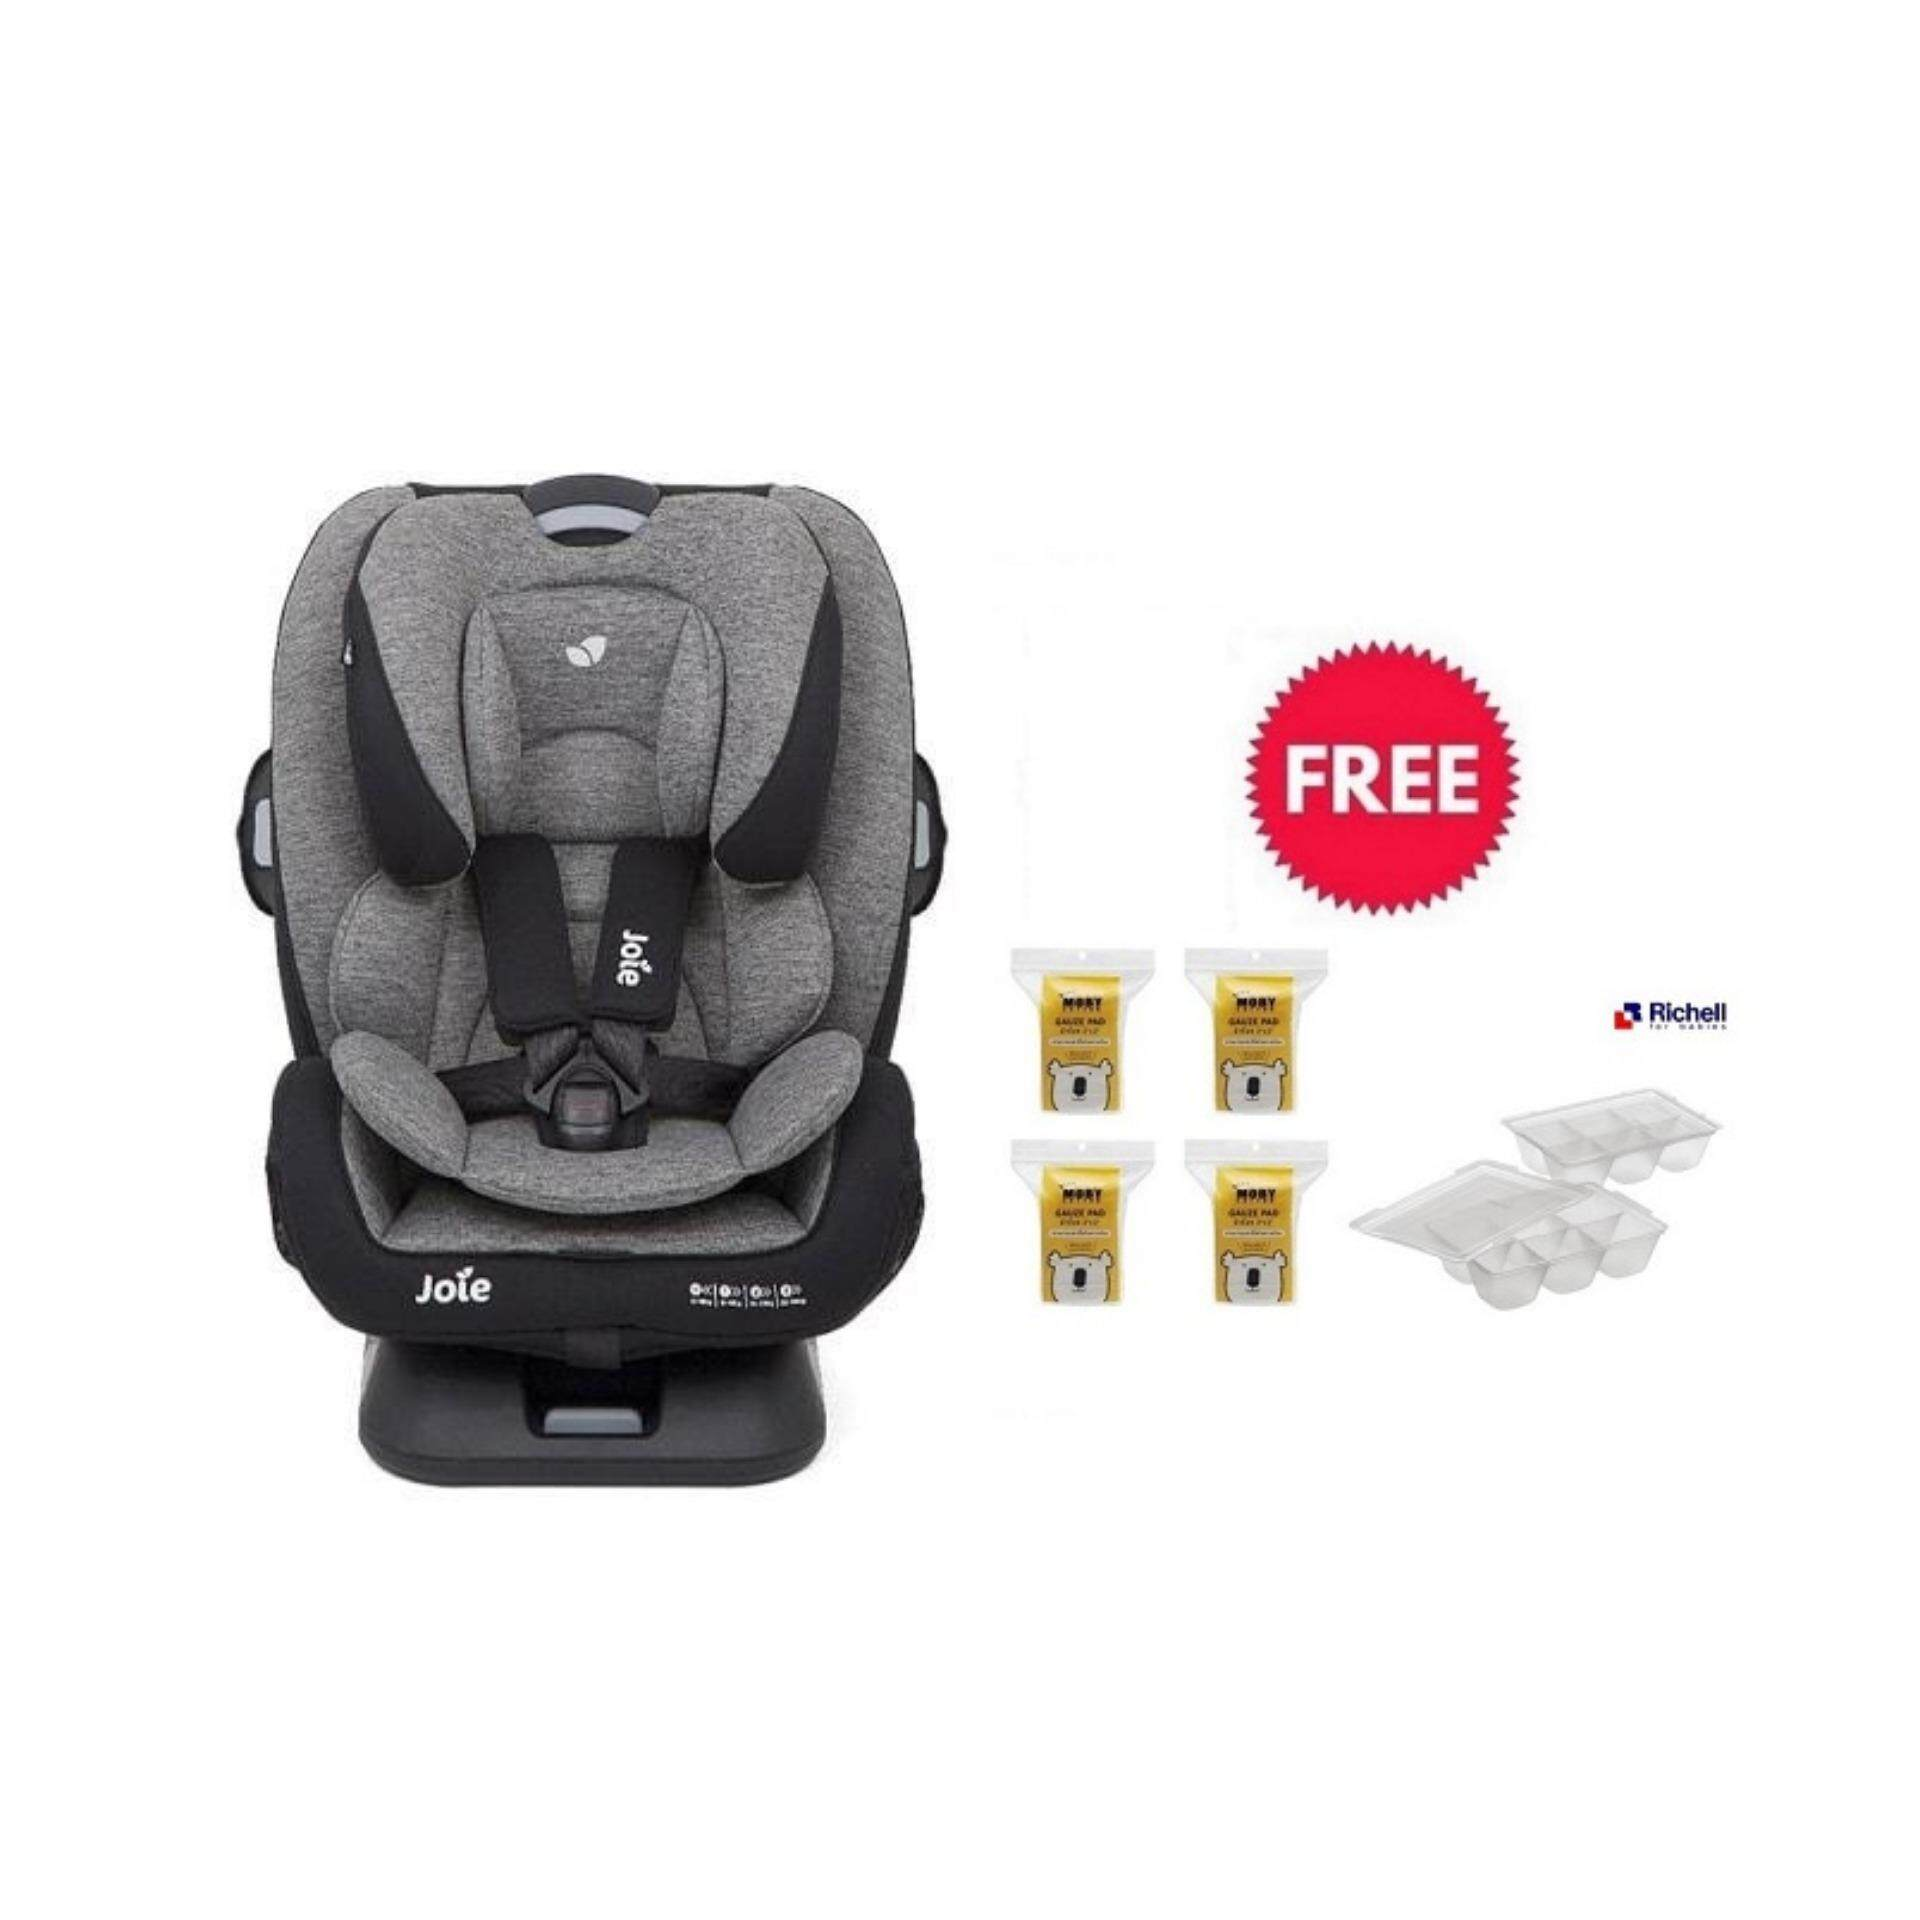 [ผ่อนได้] Joie Car Seat Every Stage FX TTB / 100% แท้ + Free (Baby Moby Gauze X 4) & Richell Food Maker Tray ราคาถูก